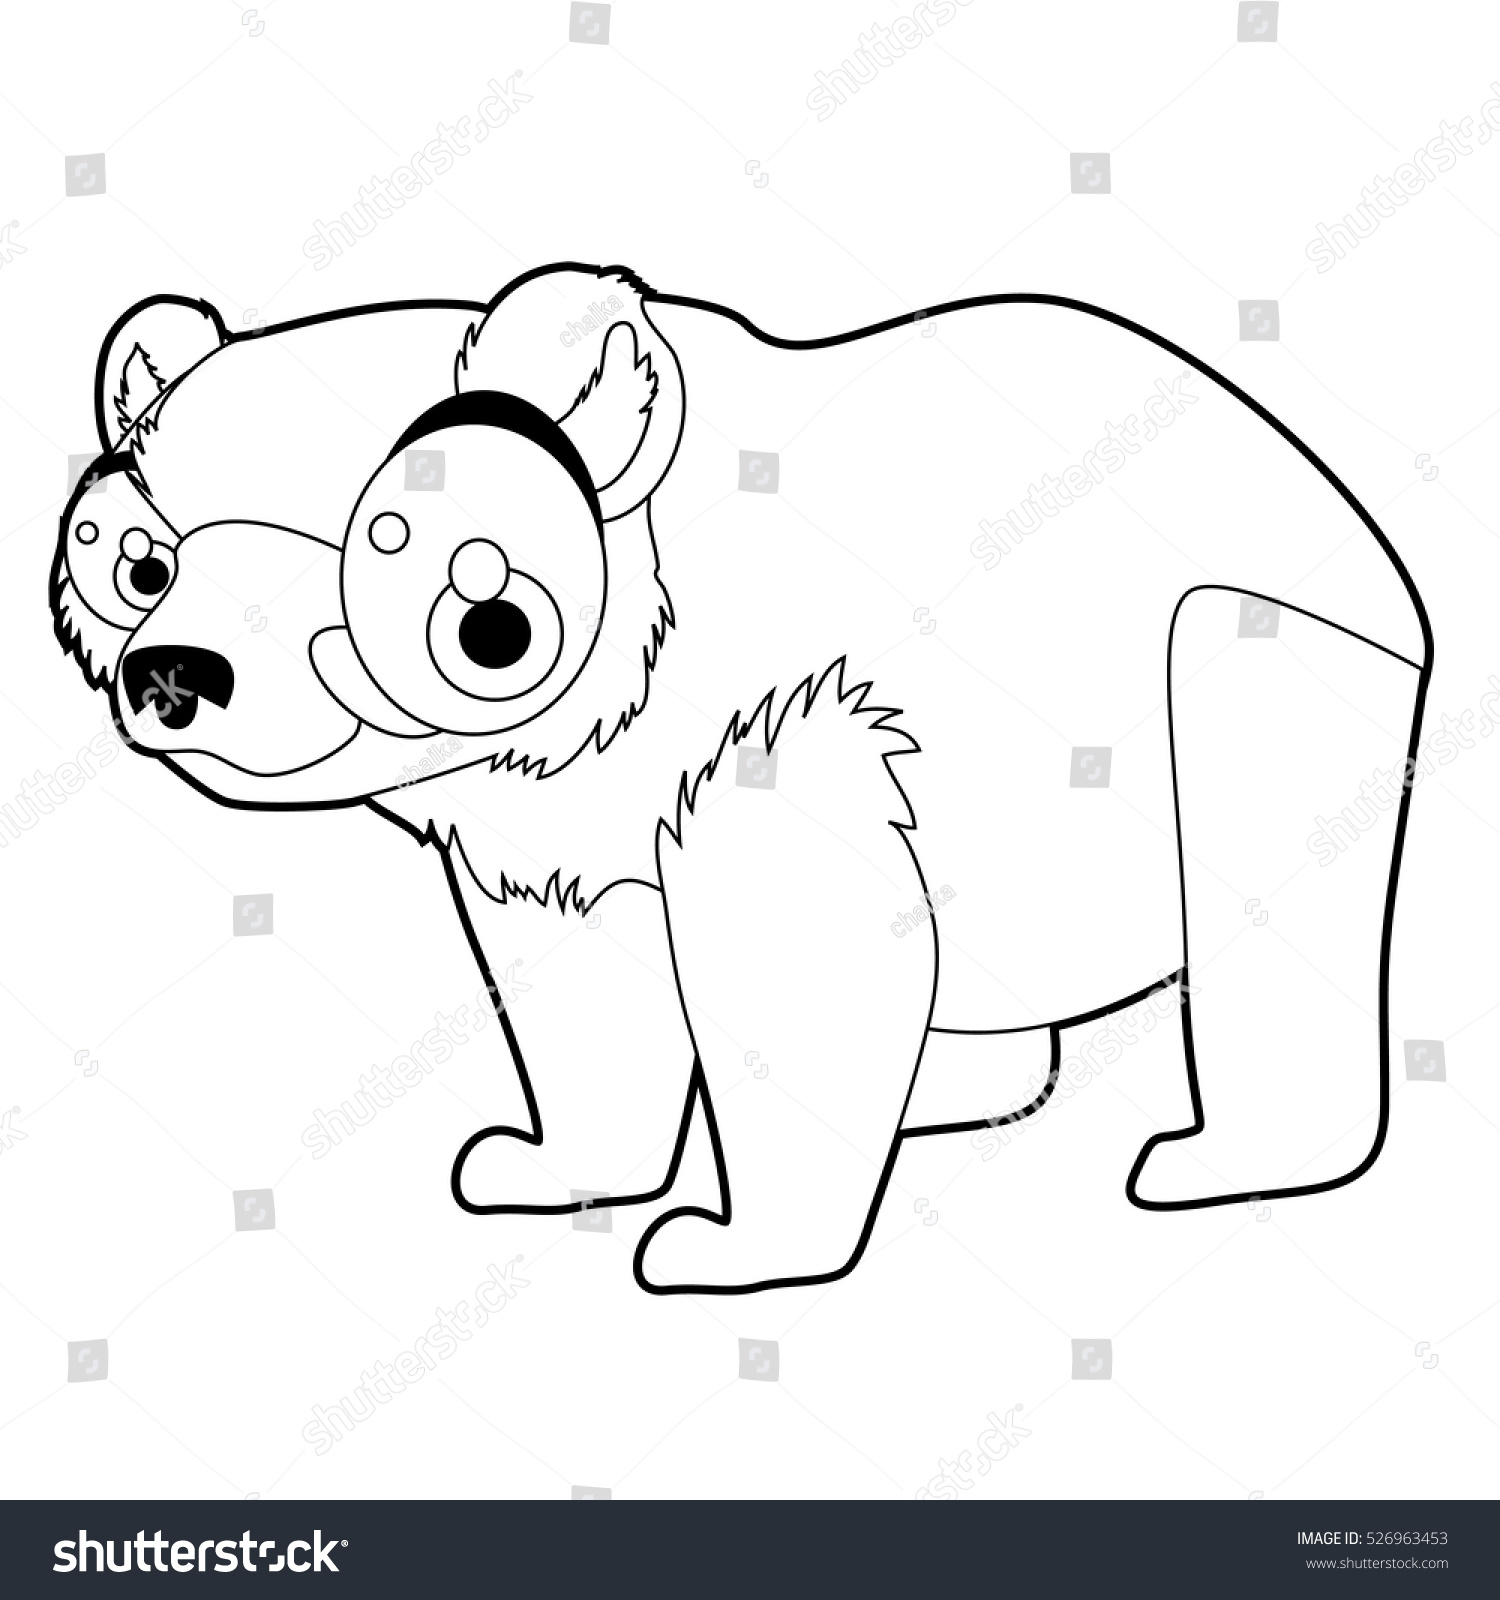 Coloring Book Page Funny Cartoon Comic Cool Nice Animals Grizzly Bear